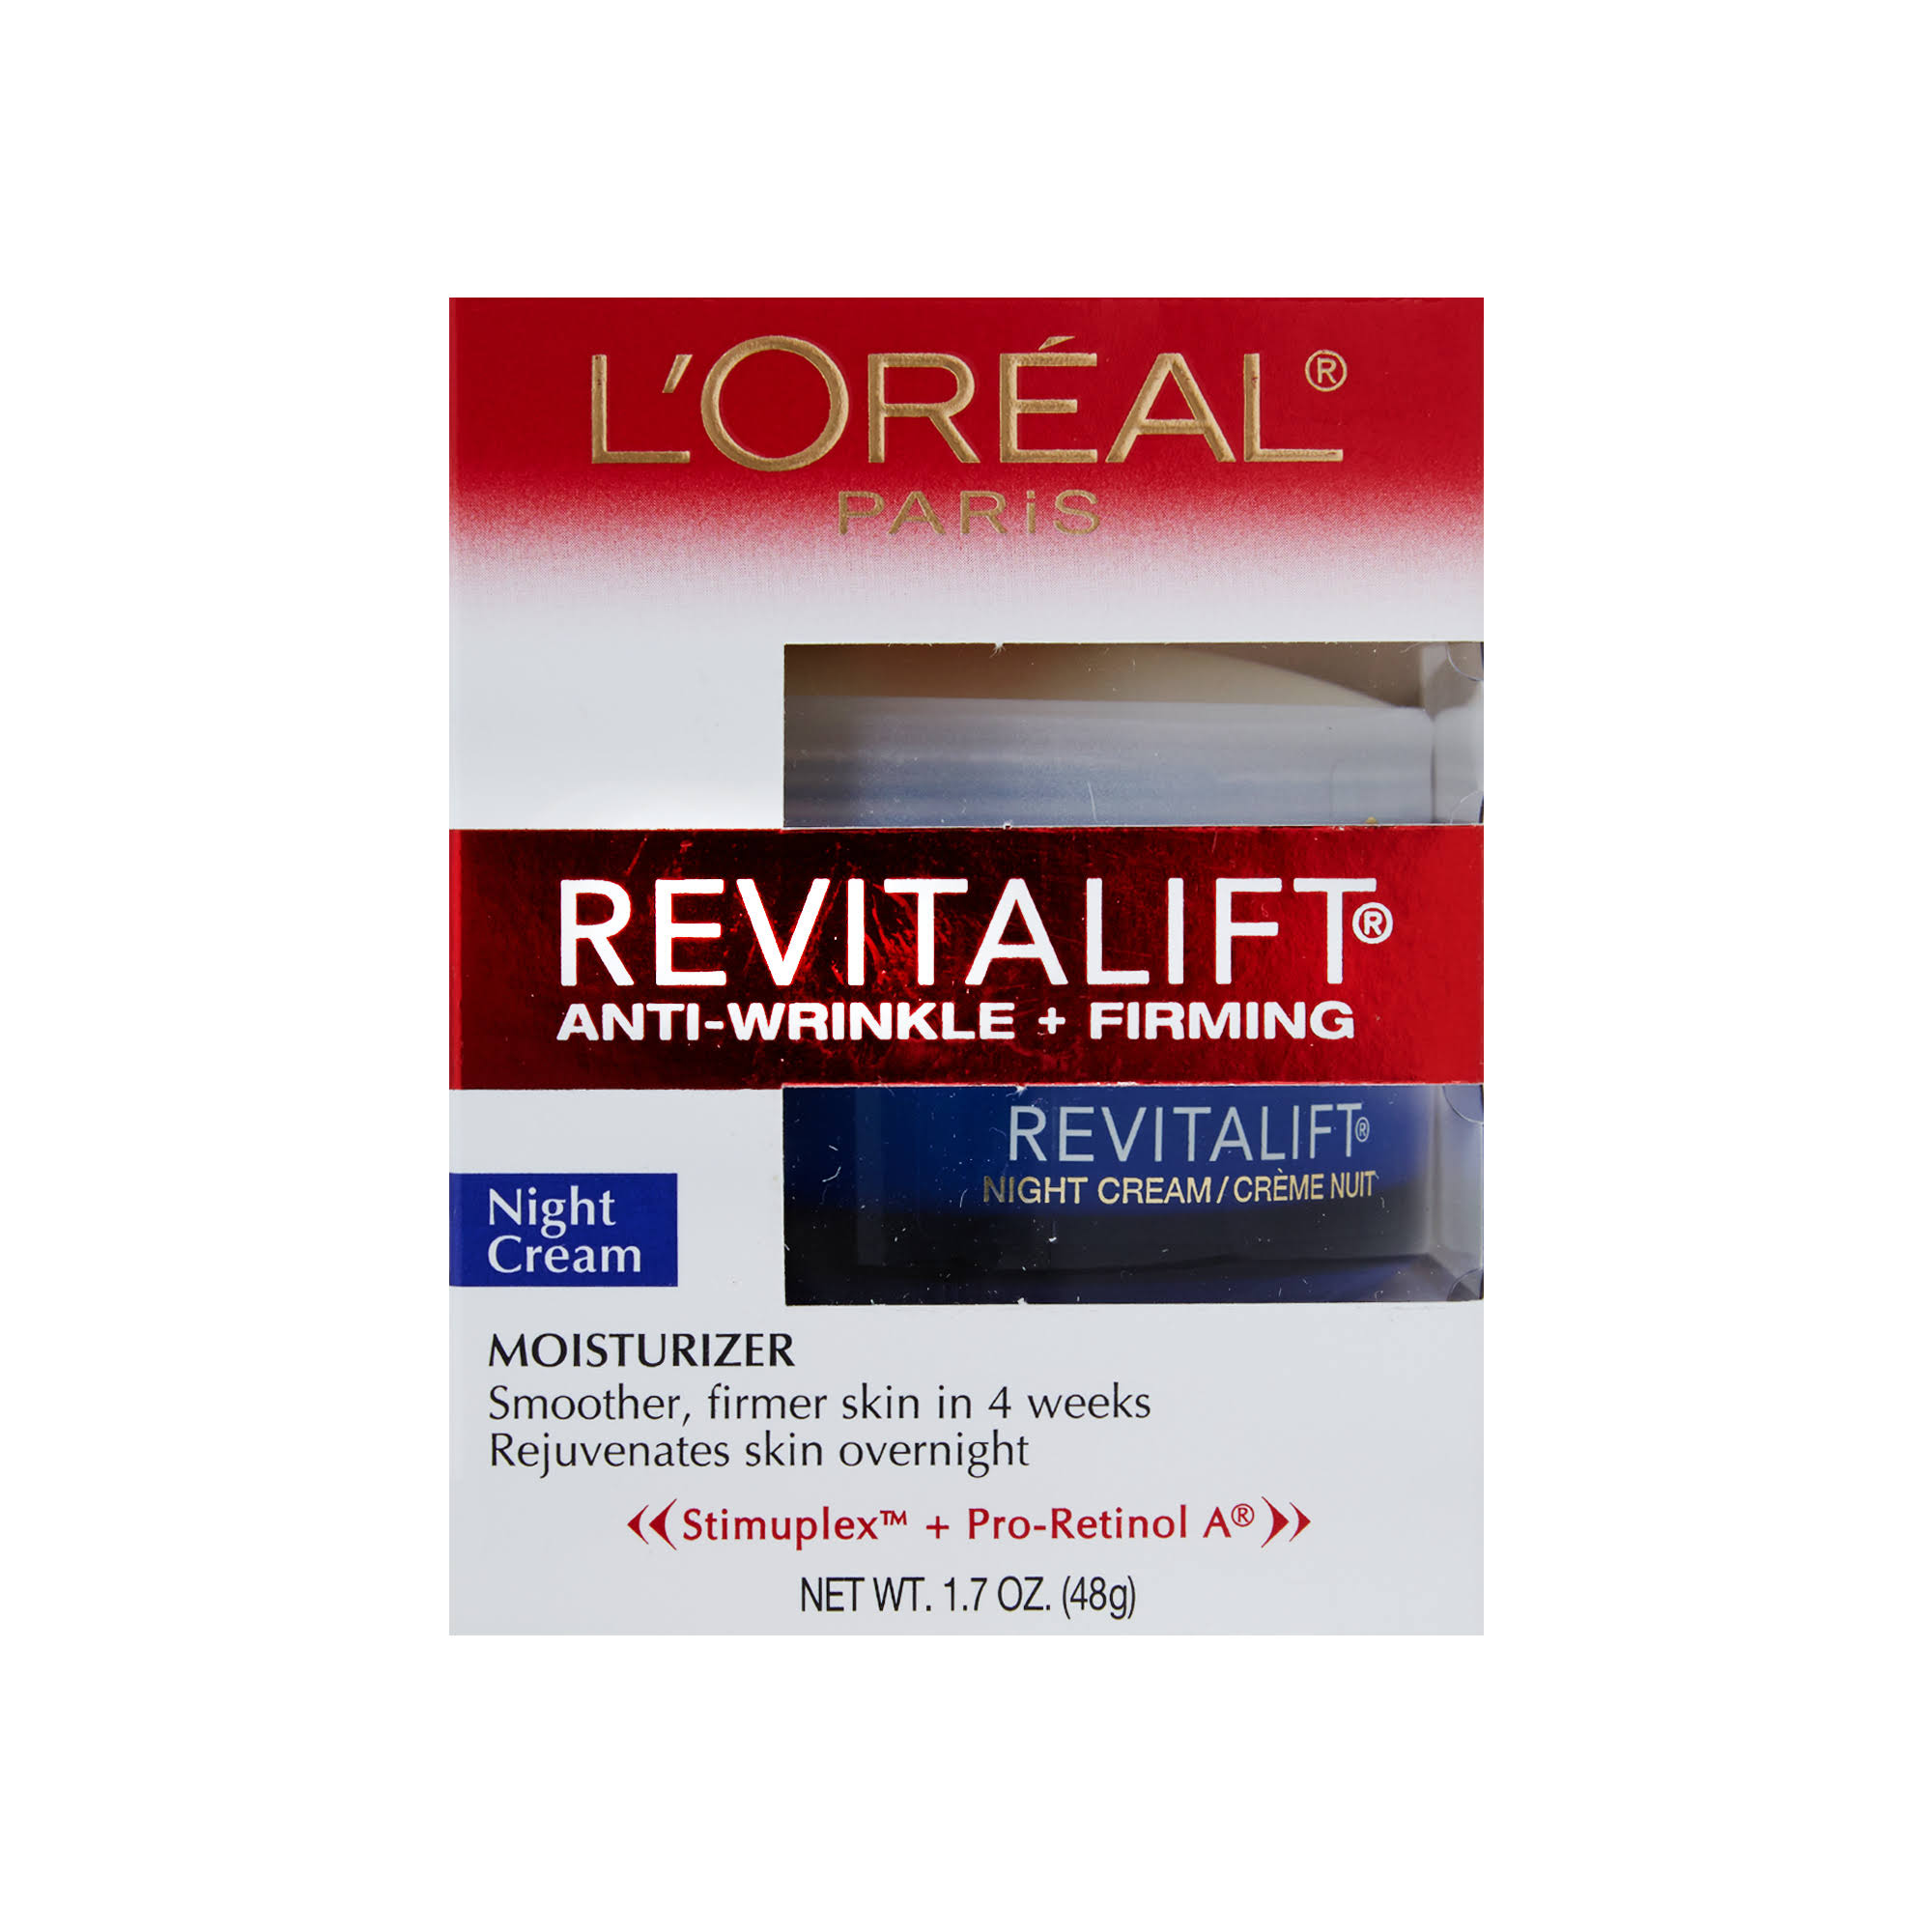 L Oreal Paris Revitalift Anti Wrinkle Firming Night Cream Moisturizer - 1.7oz